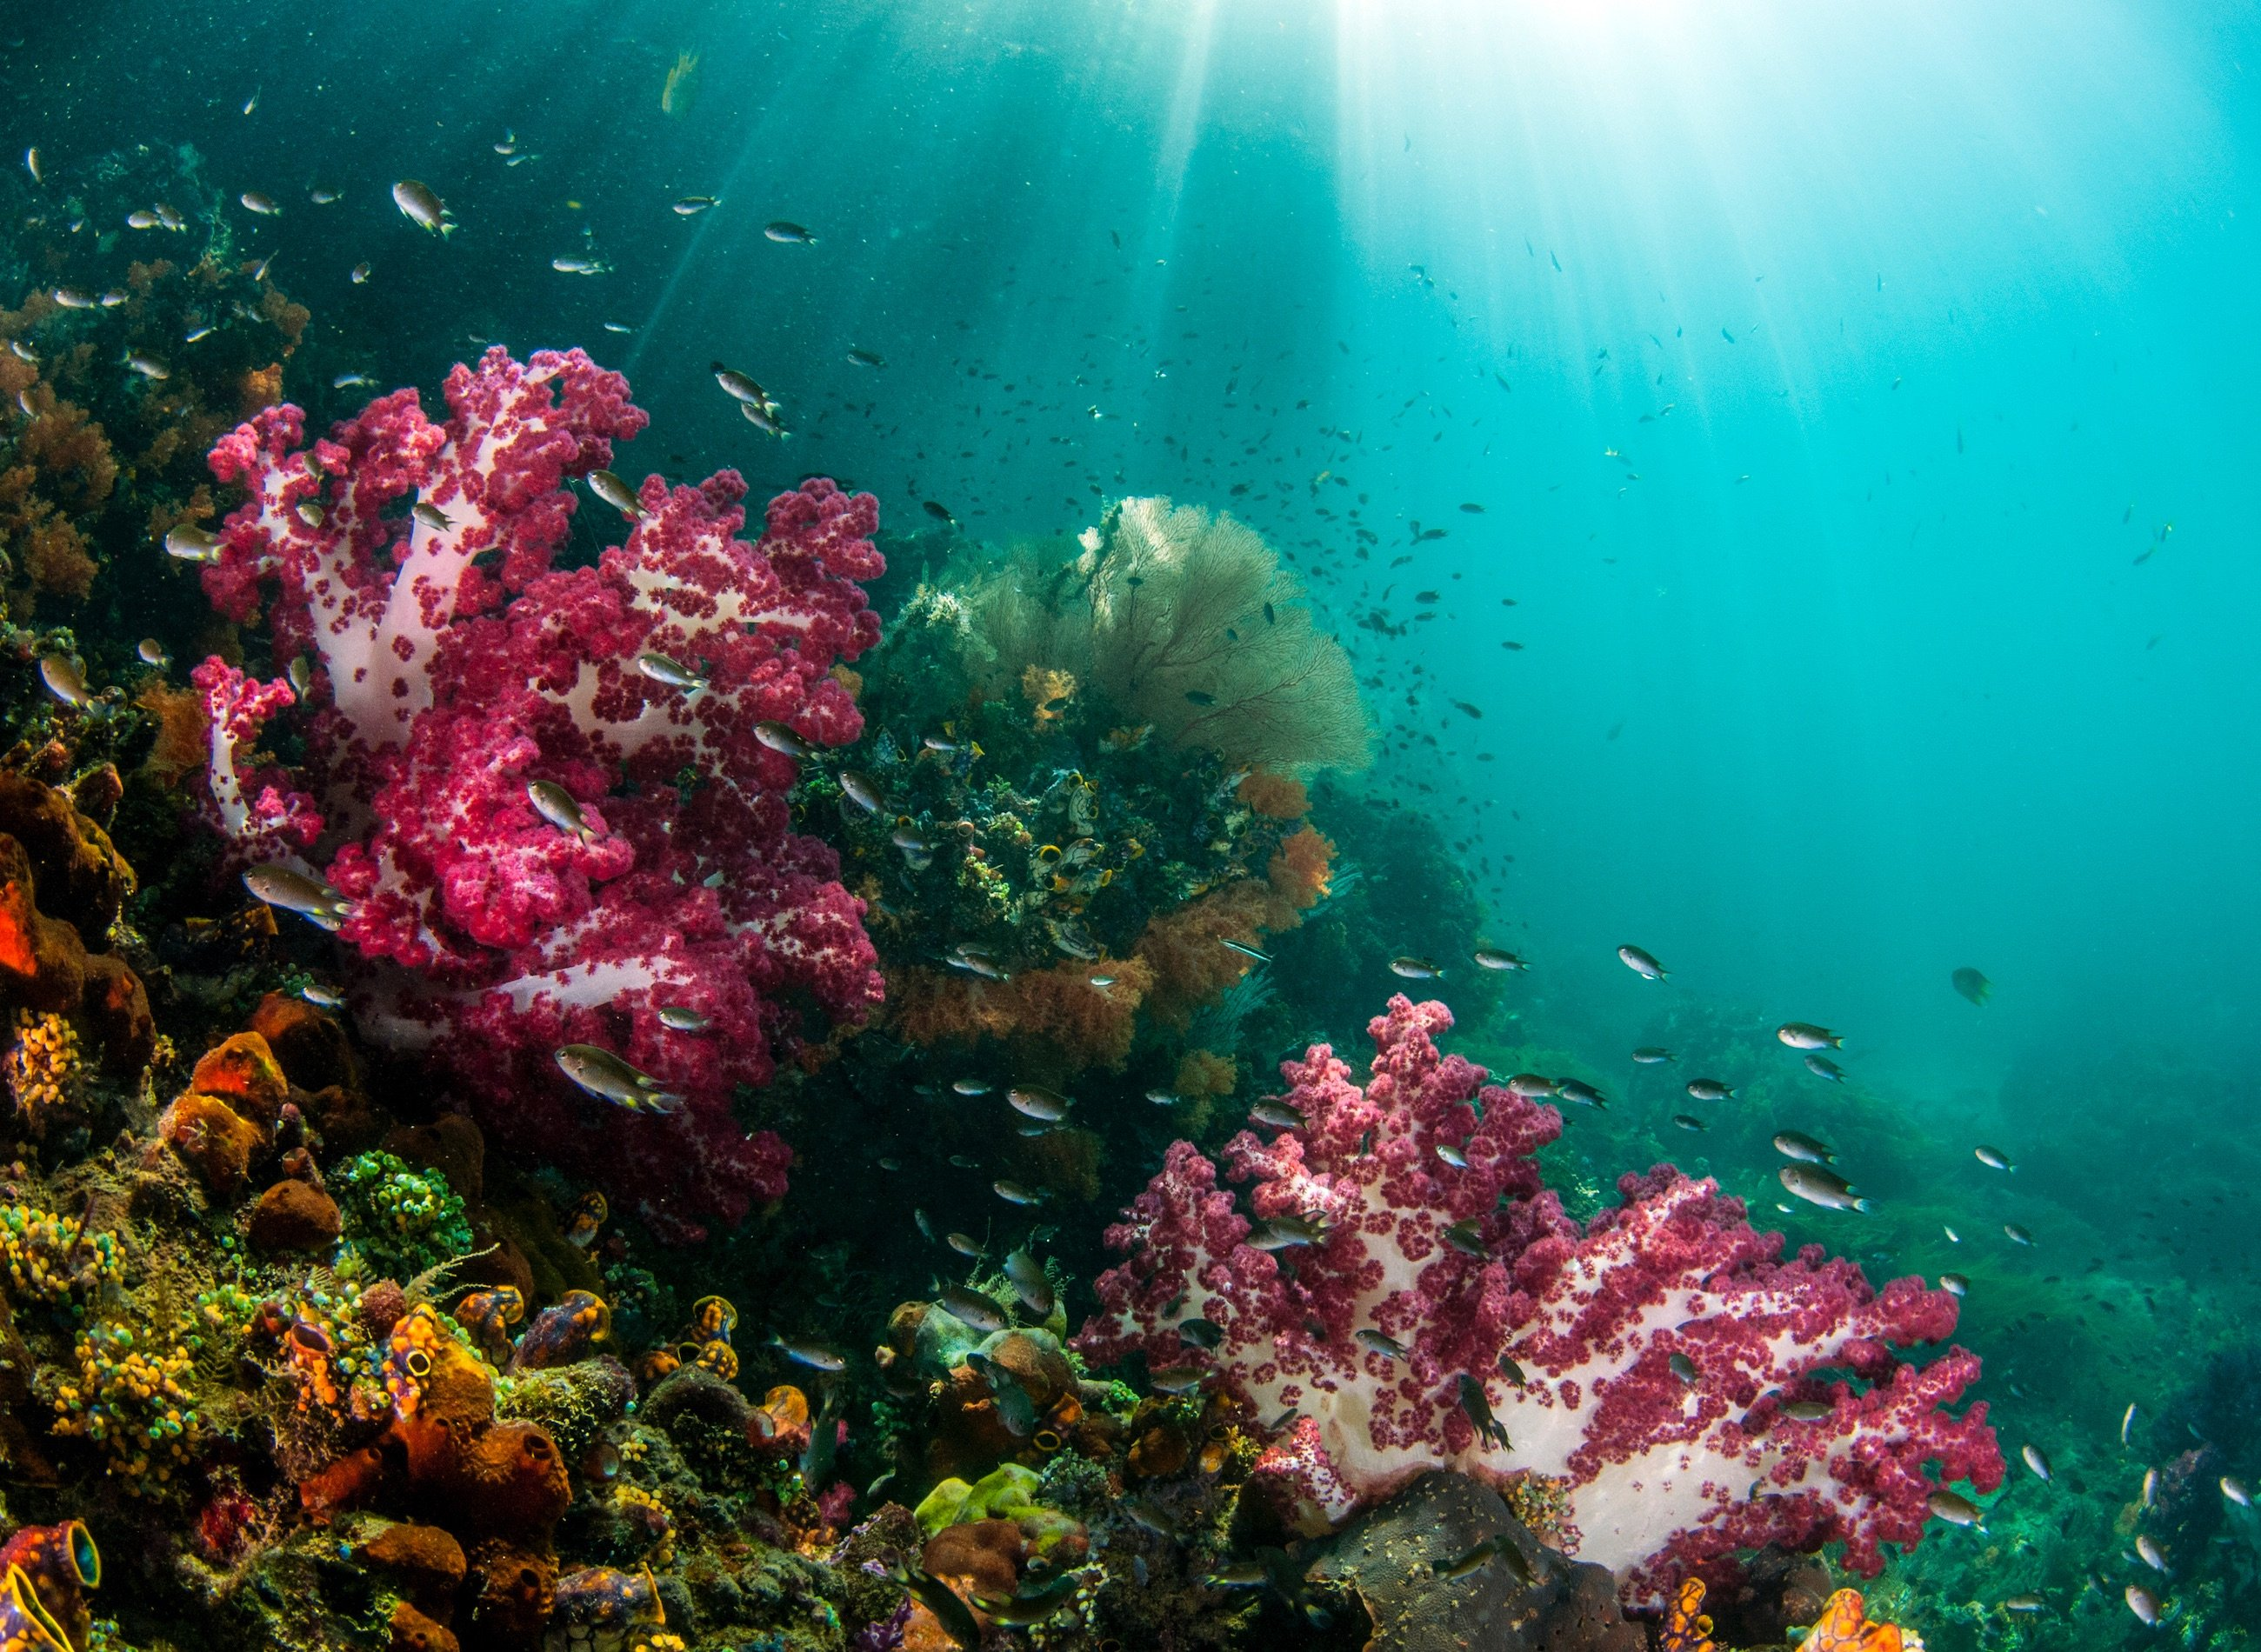 75% of the world's coral species can be seen Raja Ampat